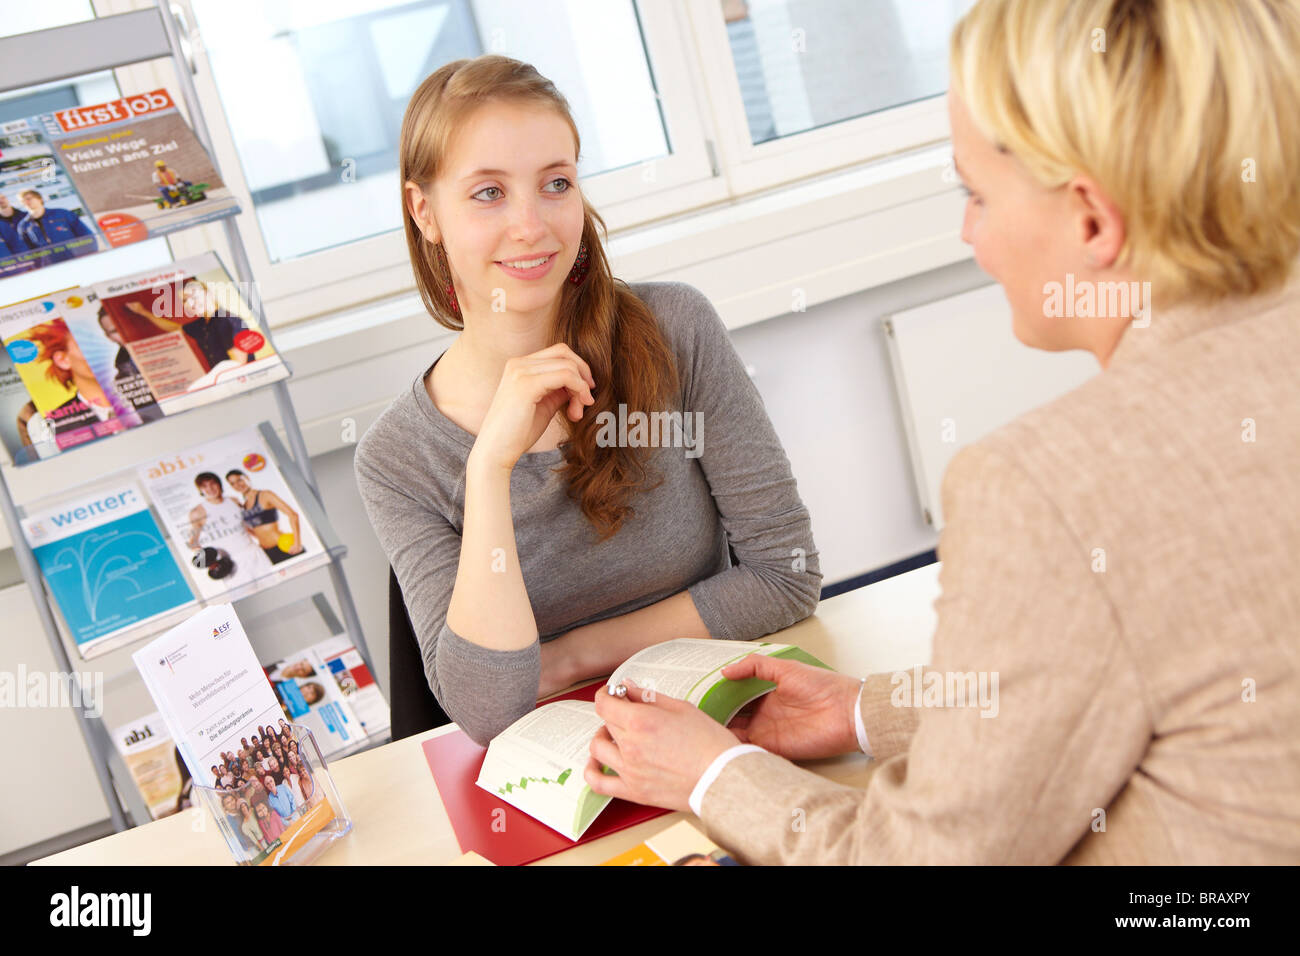 Young girl at career counseling office - Stock Image